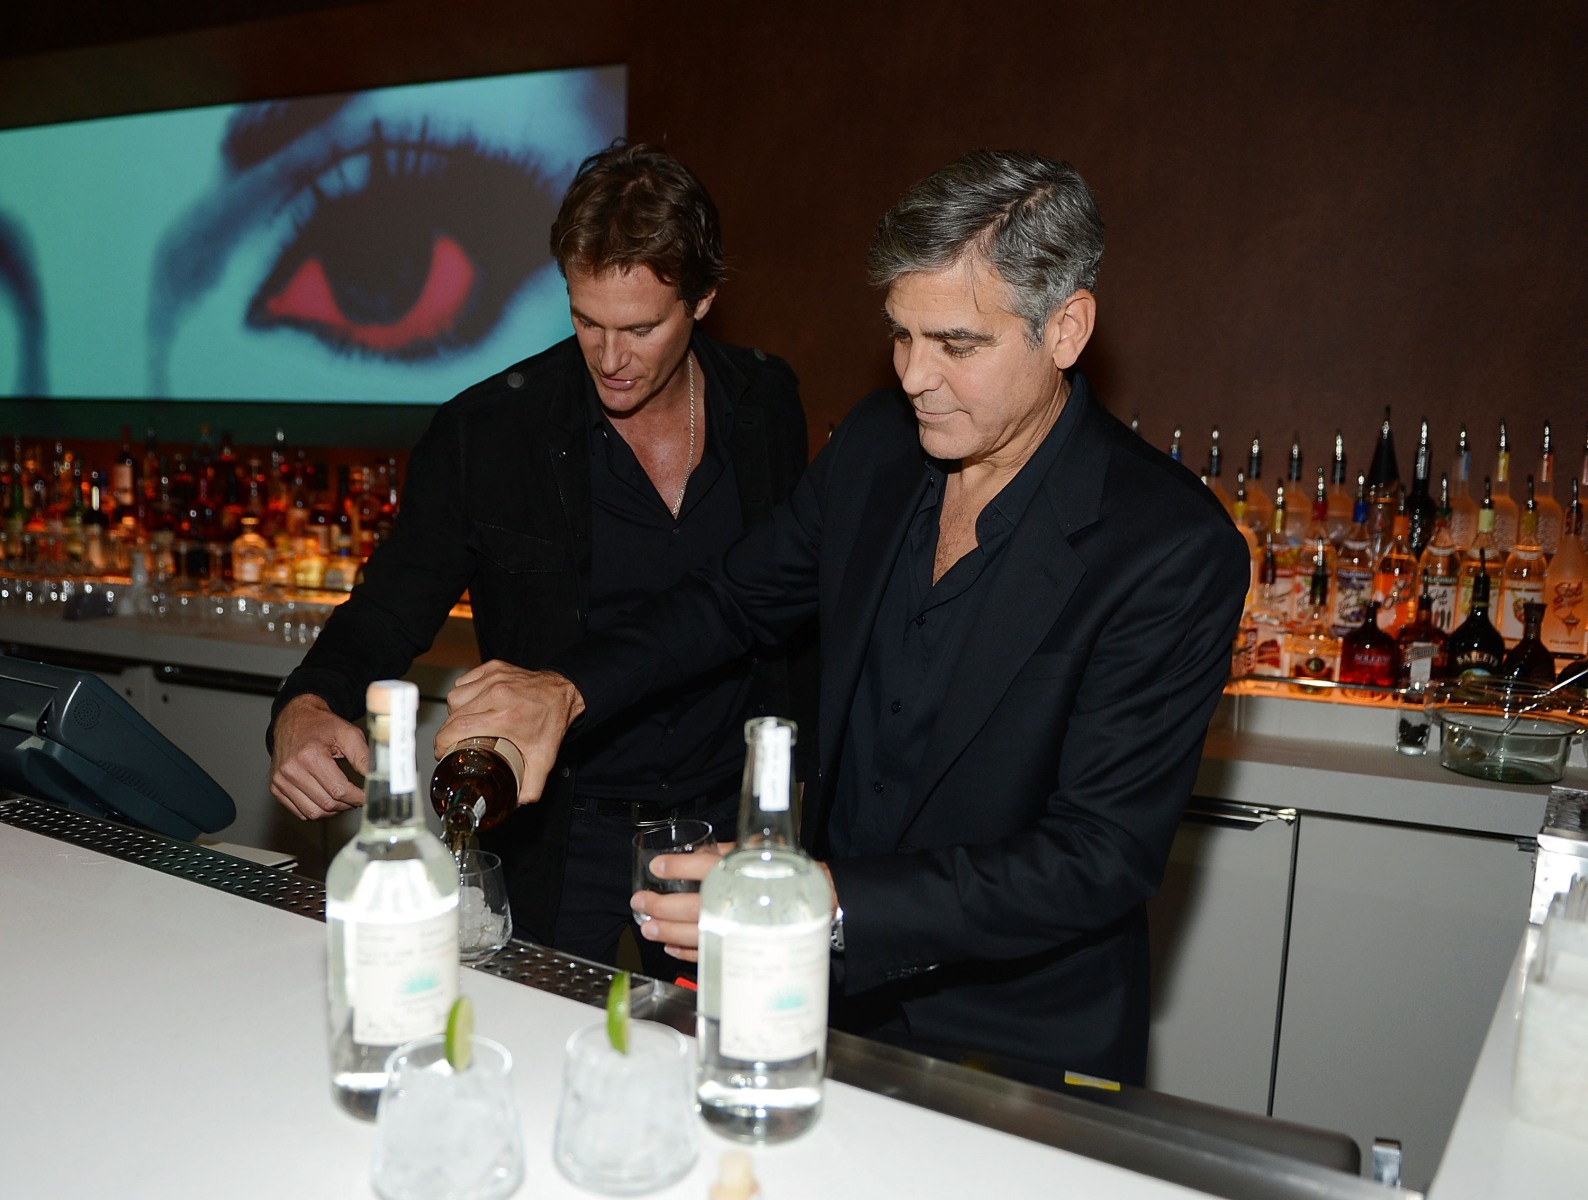 Signature Cocktails Created by Celebrities - margarita by Clooney GettyImages-159221723